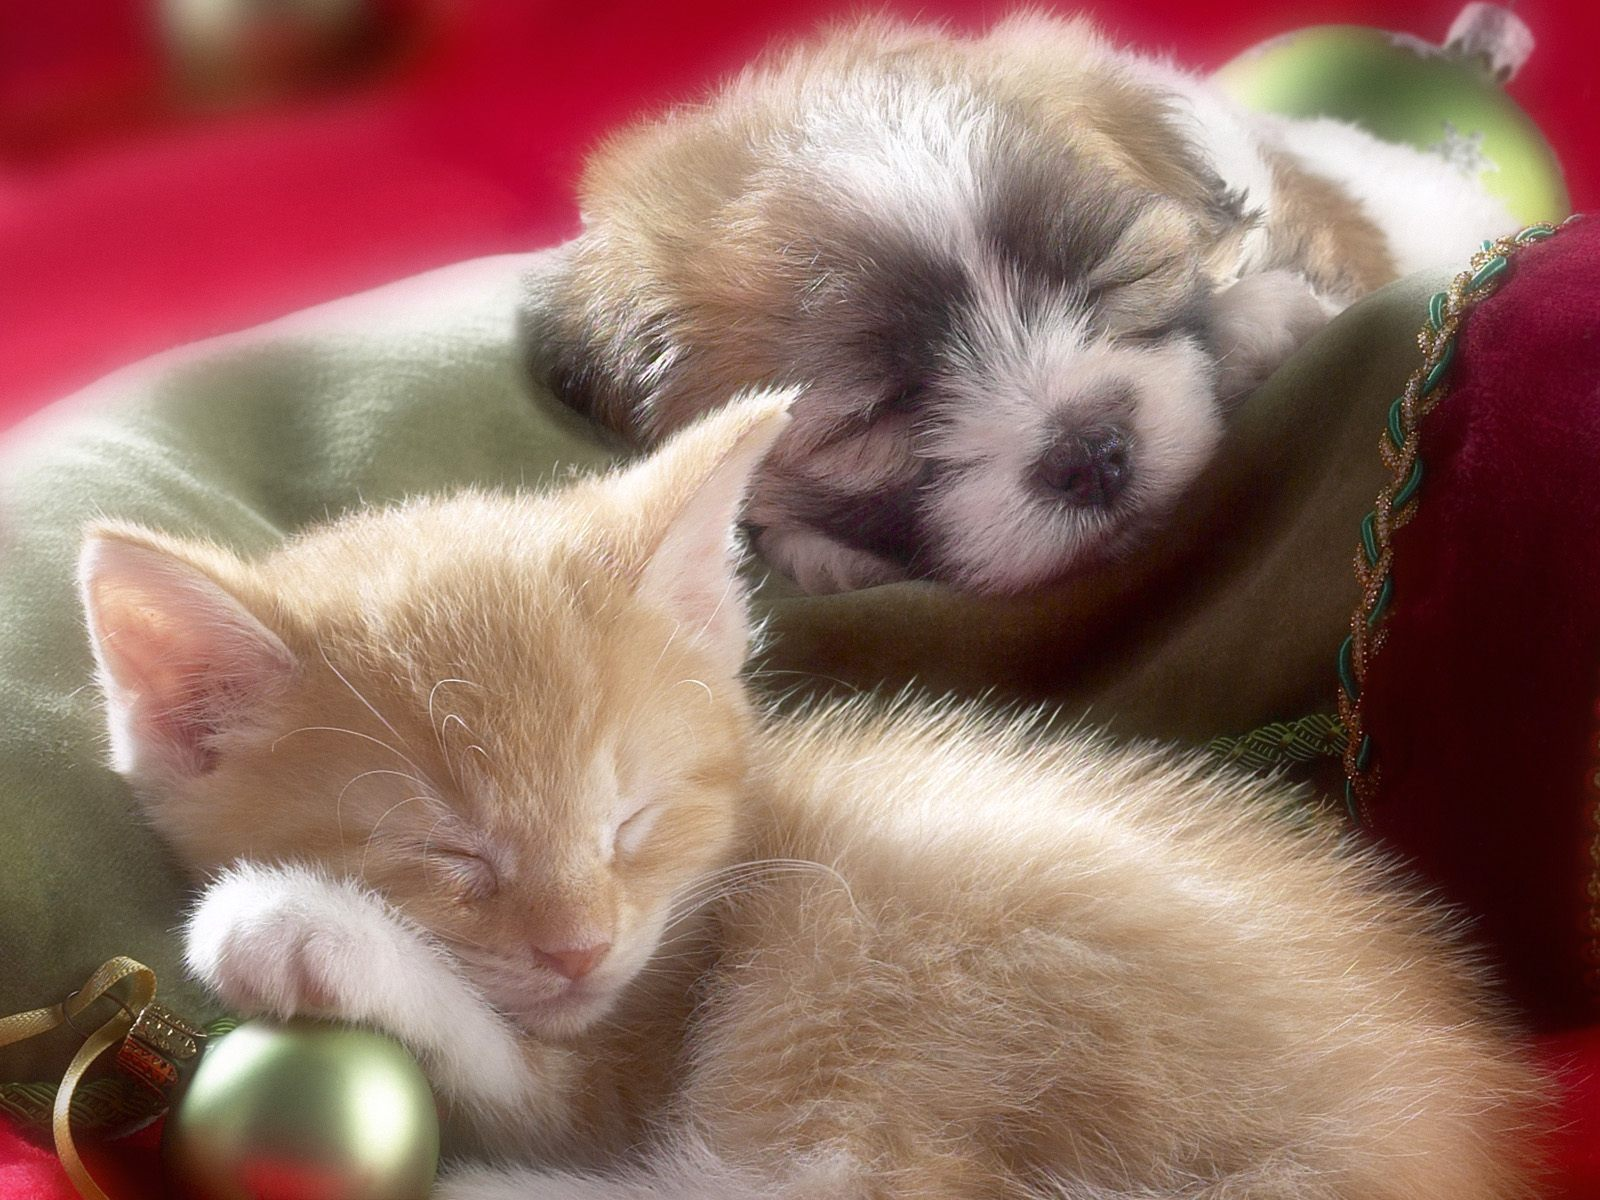 Kittens Kitten and Puppy 1600x1200